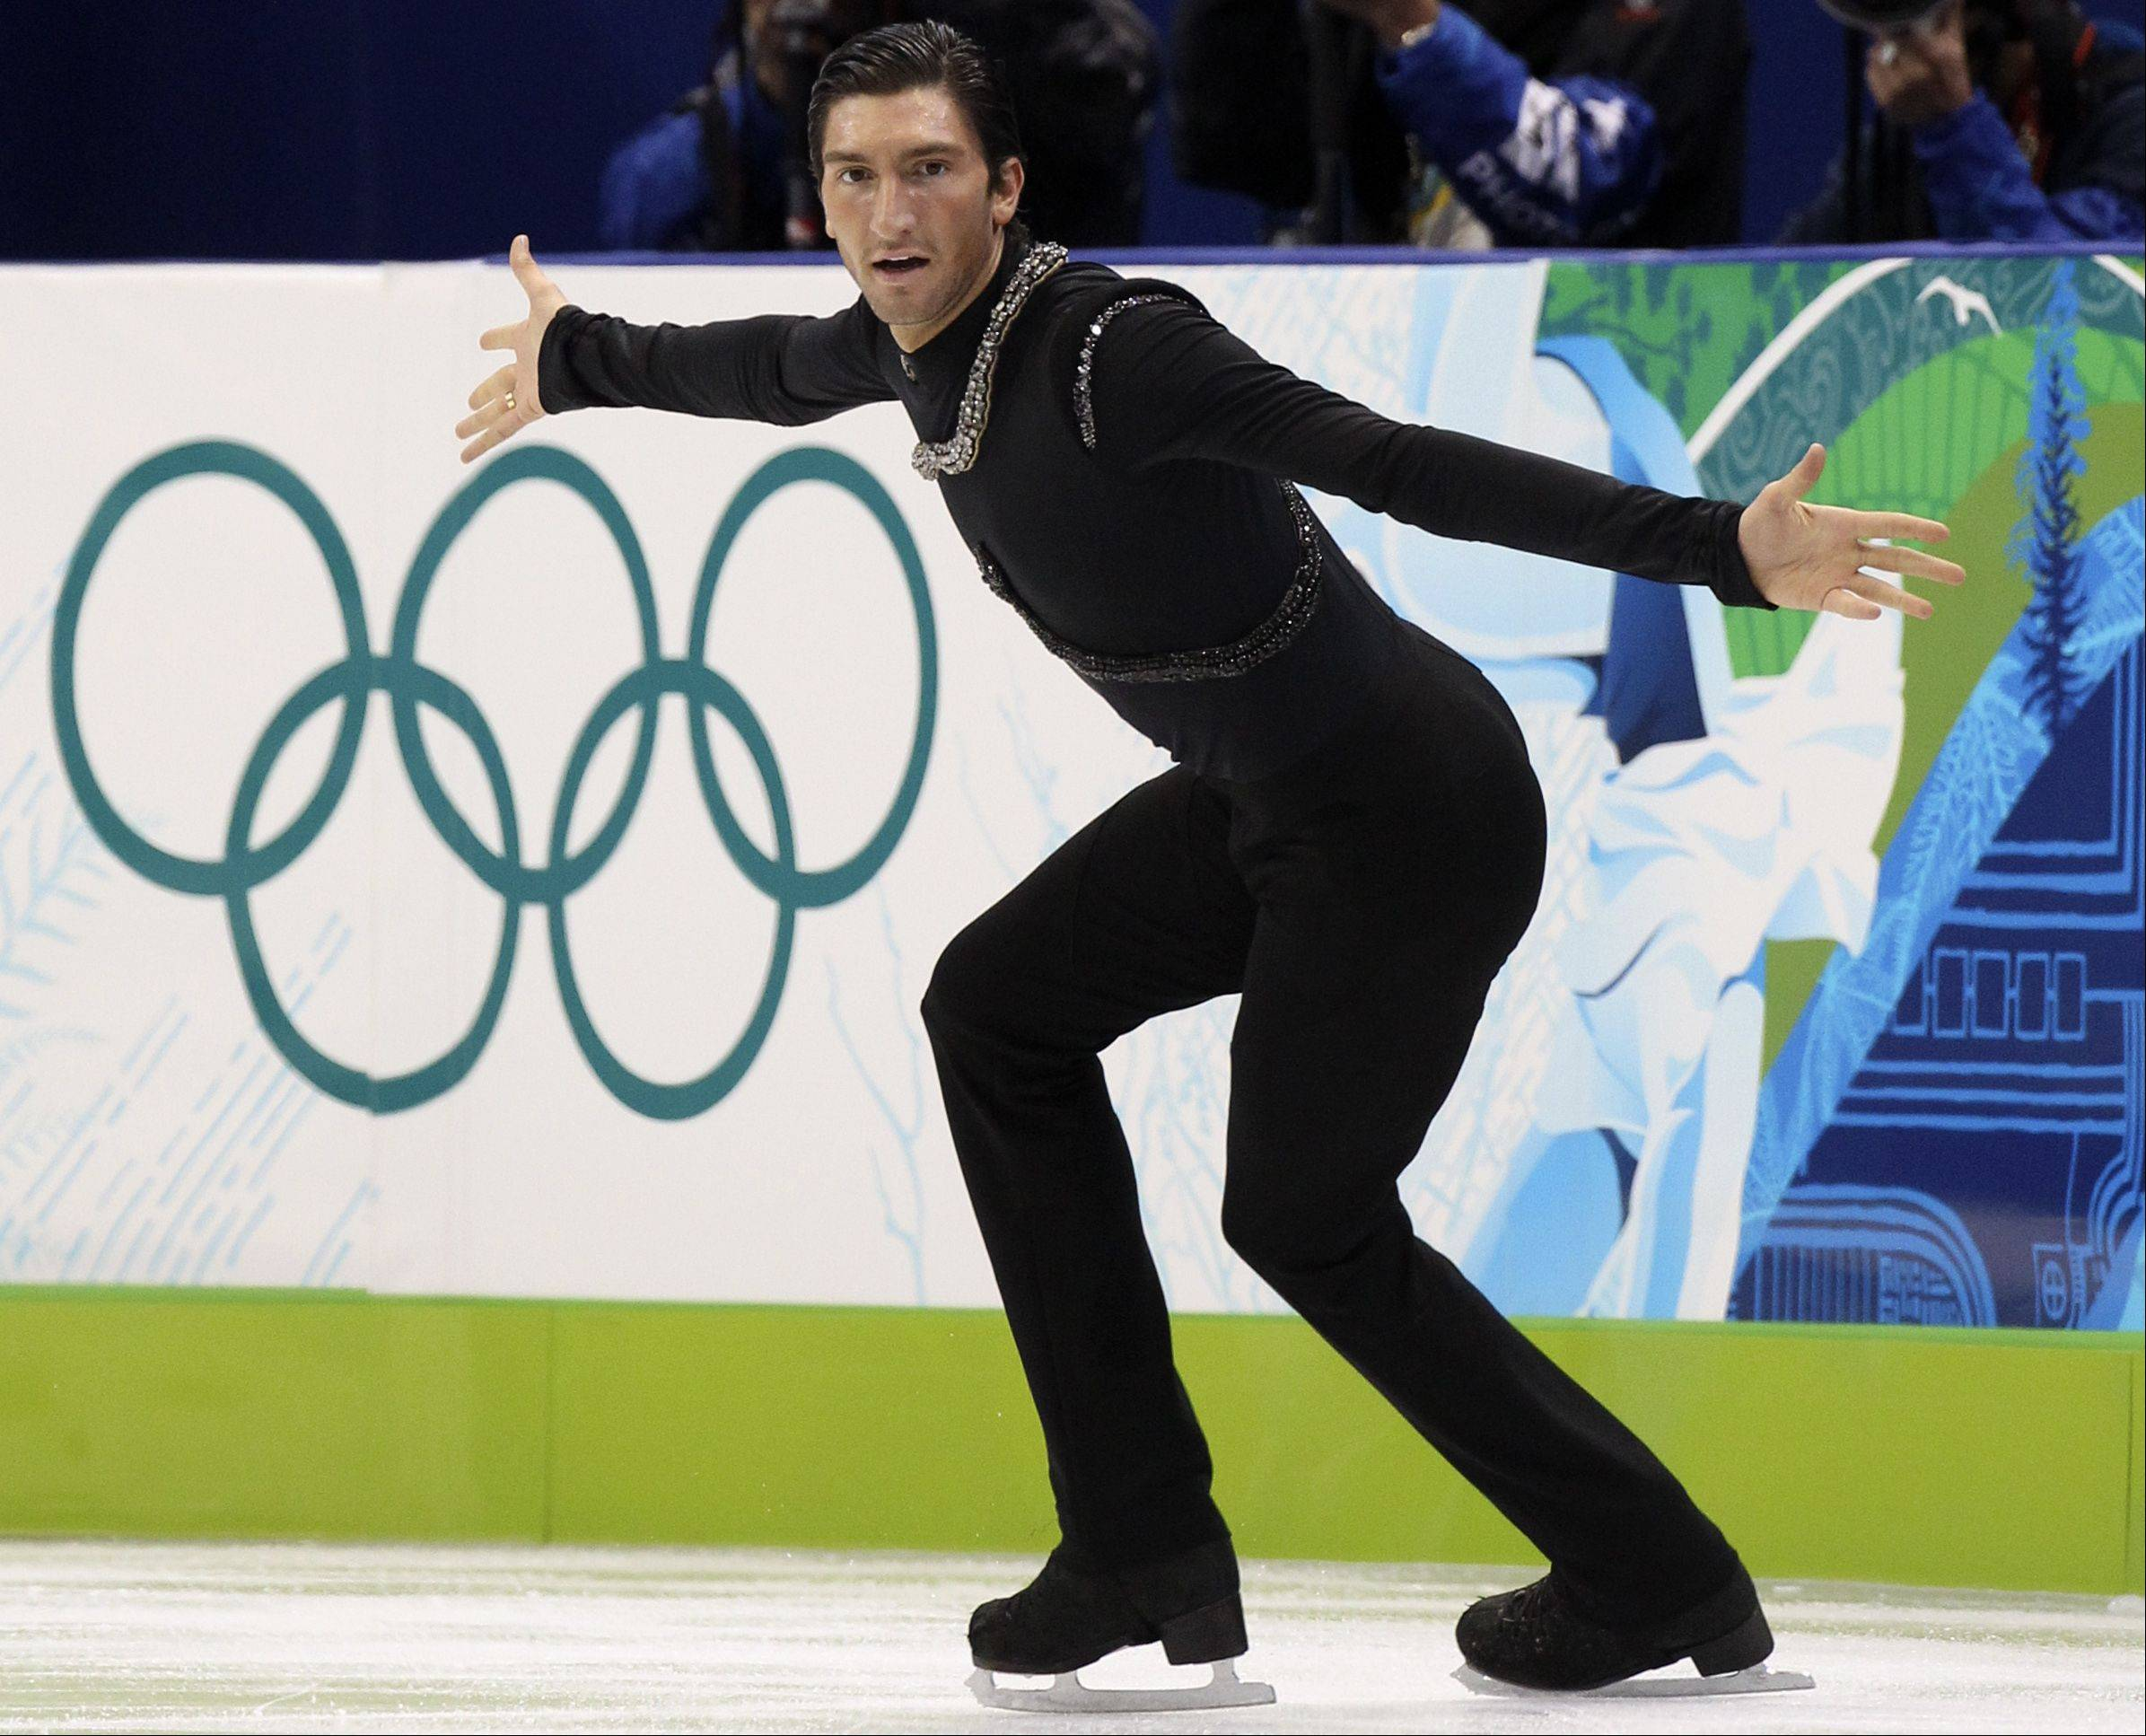 Evan Lysacek performs during the men's figure skating competition at the 2010 Olympics in Vancouver, British Columbia.